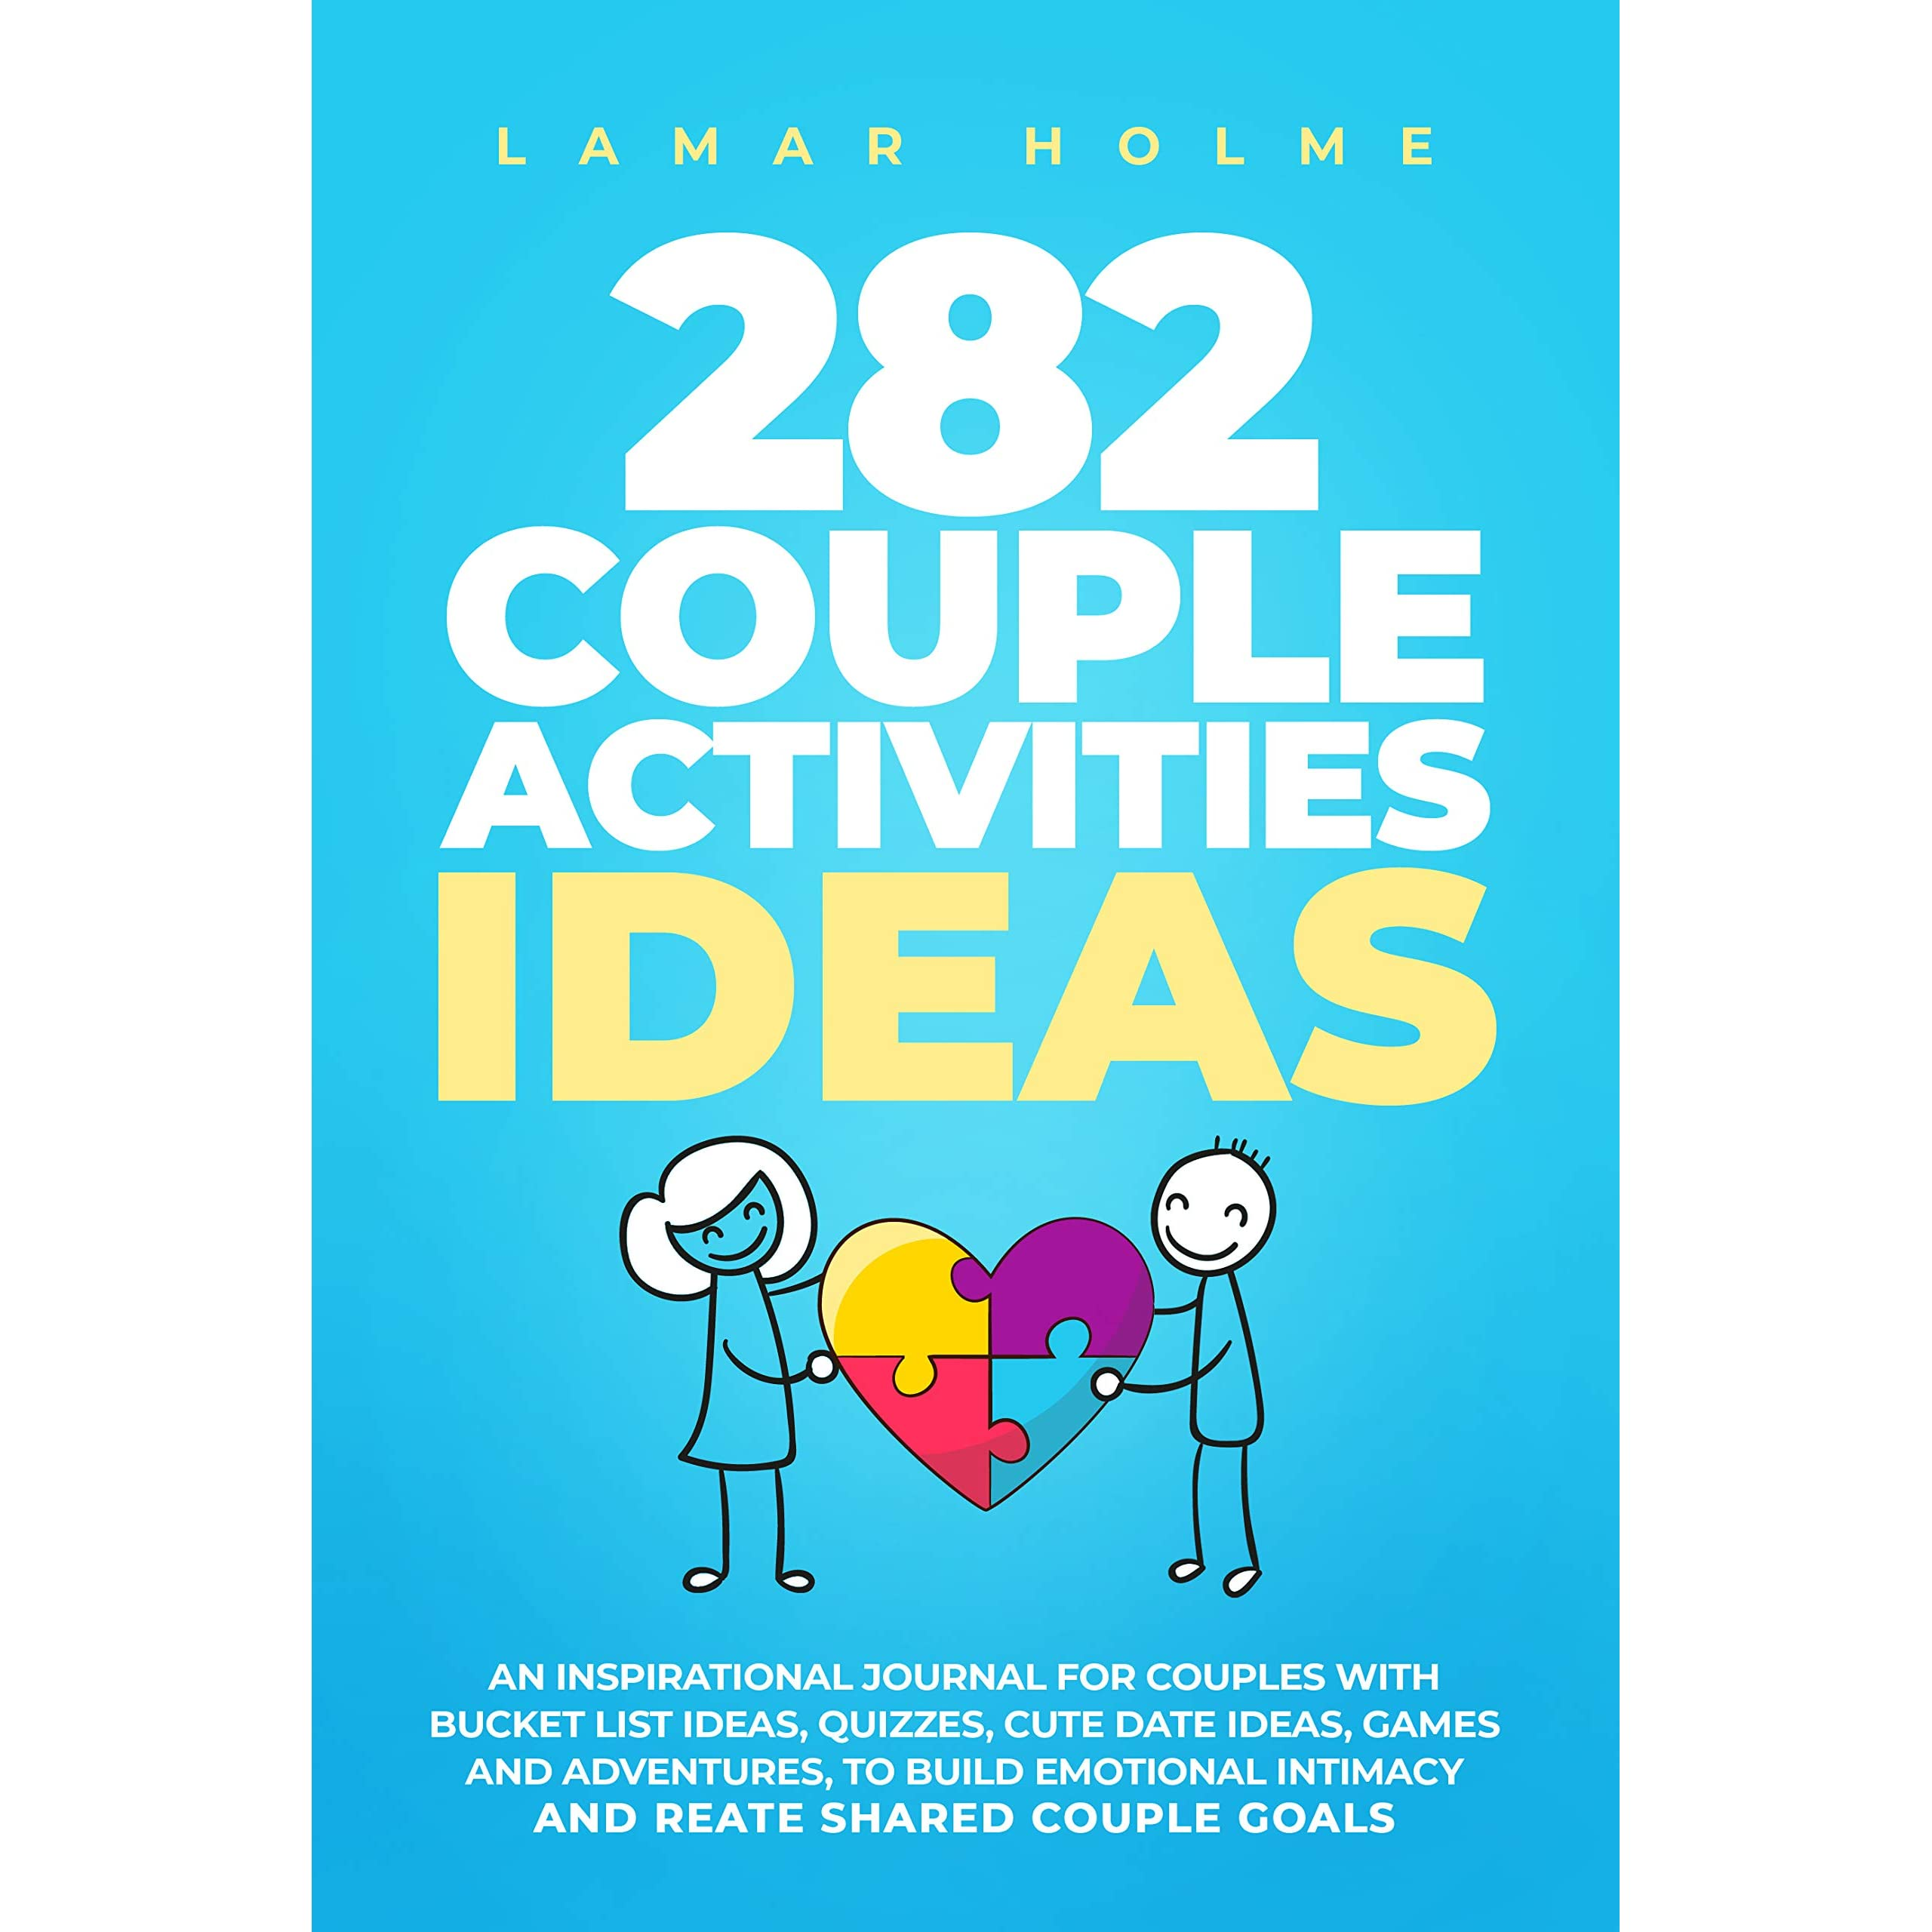 282 Couple Activities Ideas An Inspirational Journal For Couples With Bucket List Ideas Quizzes Cute Date Ideas Games And Adventures To Build Emotional Intimacy And Create Shared Couple Goals By Lamar Holme